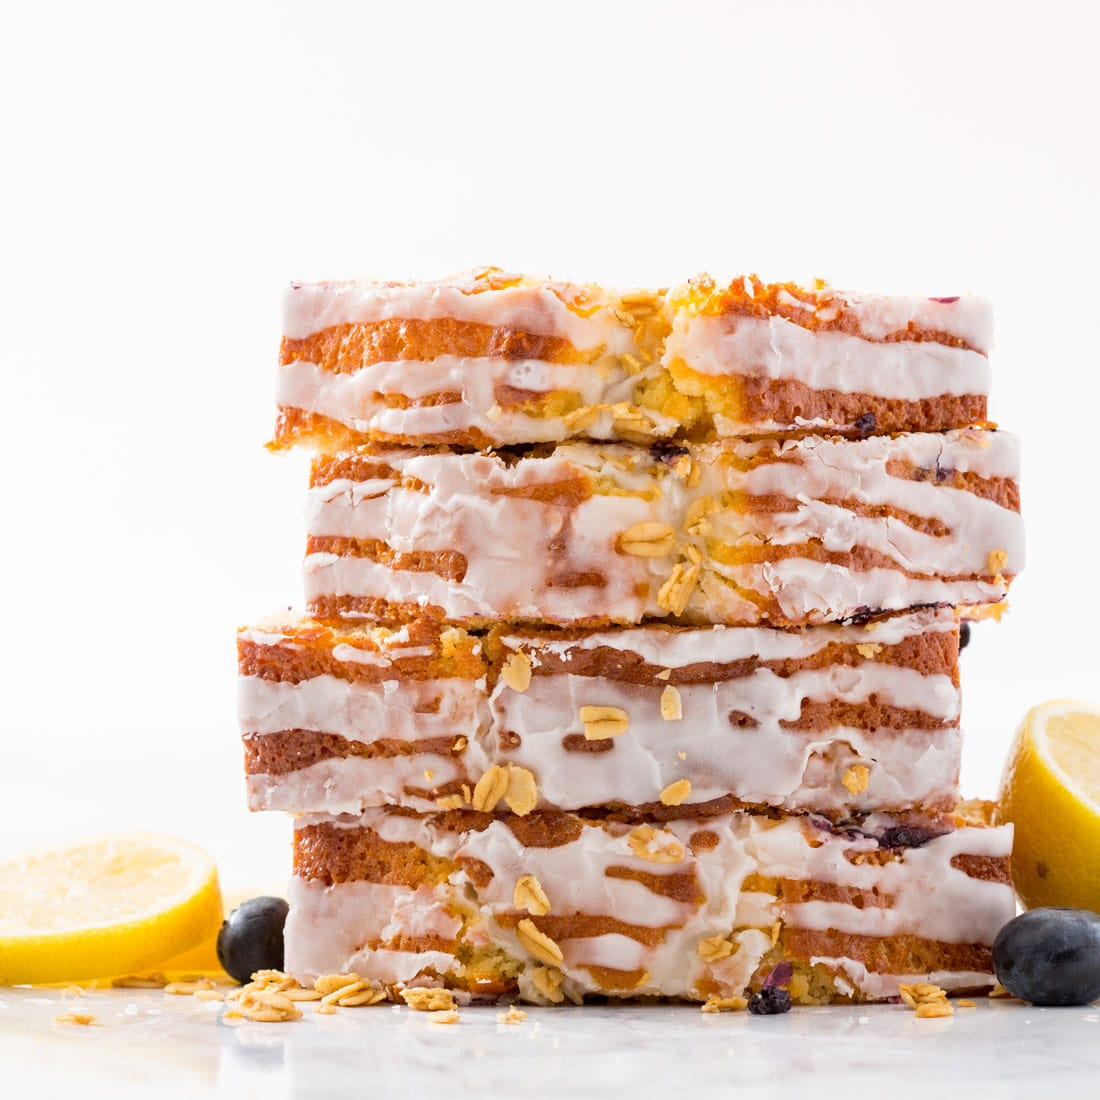 Stack of Miss Jones Baking Co Lemon Blueberry Muffin Bread with the lemon icing